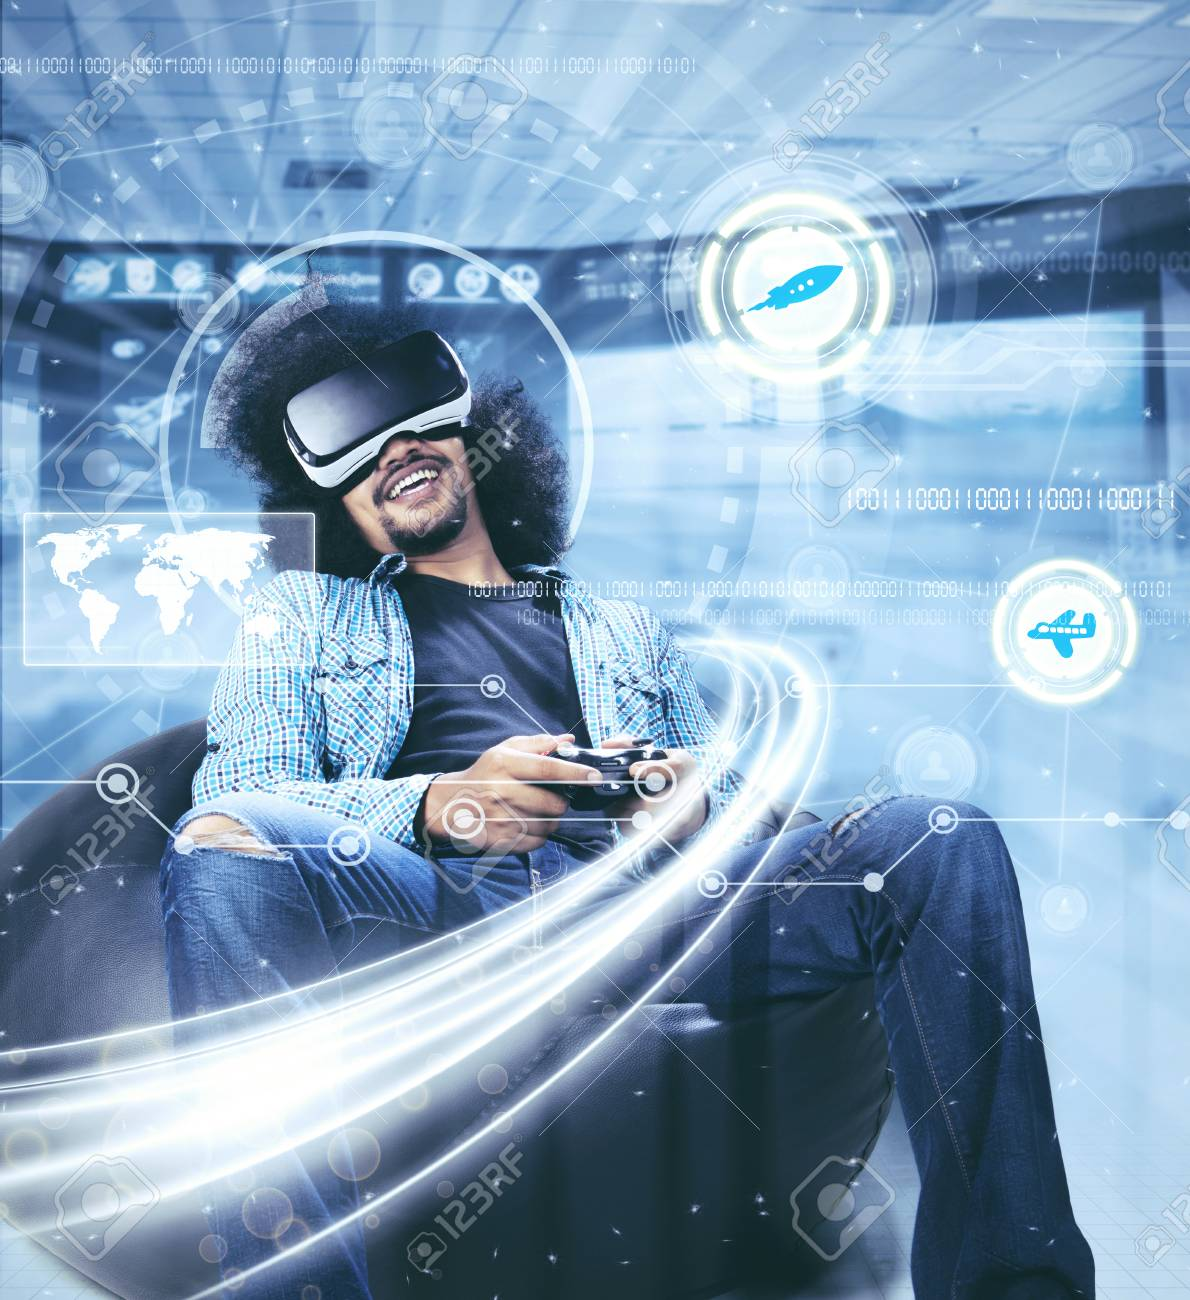 3646570a4351 Stock Photo - Young man is playing a video game with virtual reality  glasses and a joystick. Shot with futuristic screen